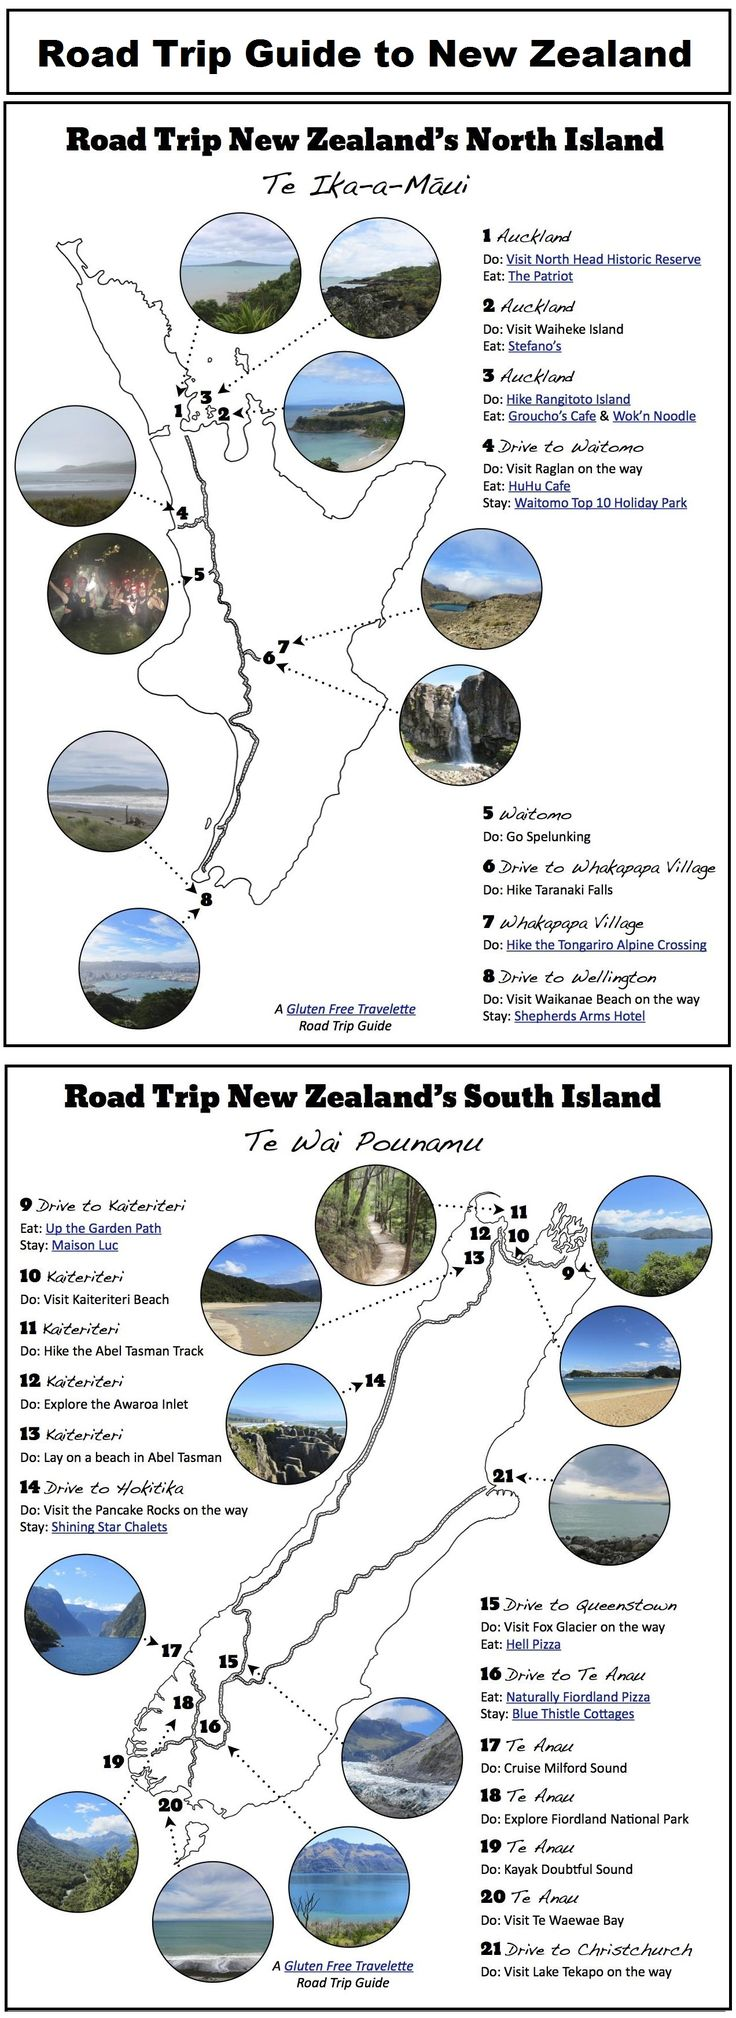 Road Trip Guide to New Zealand More